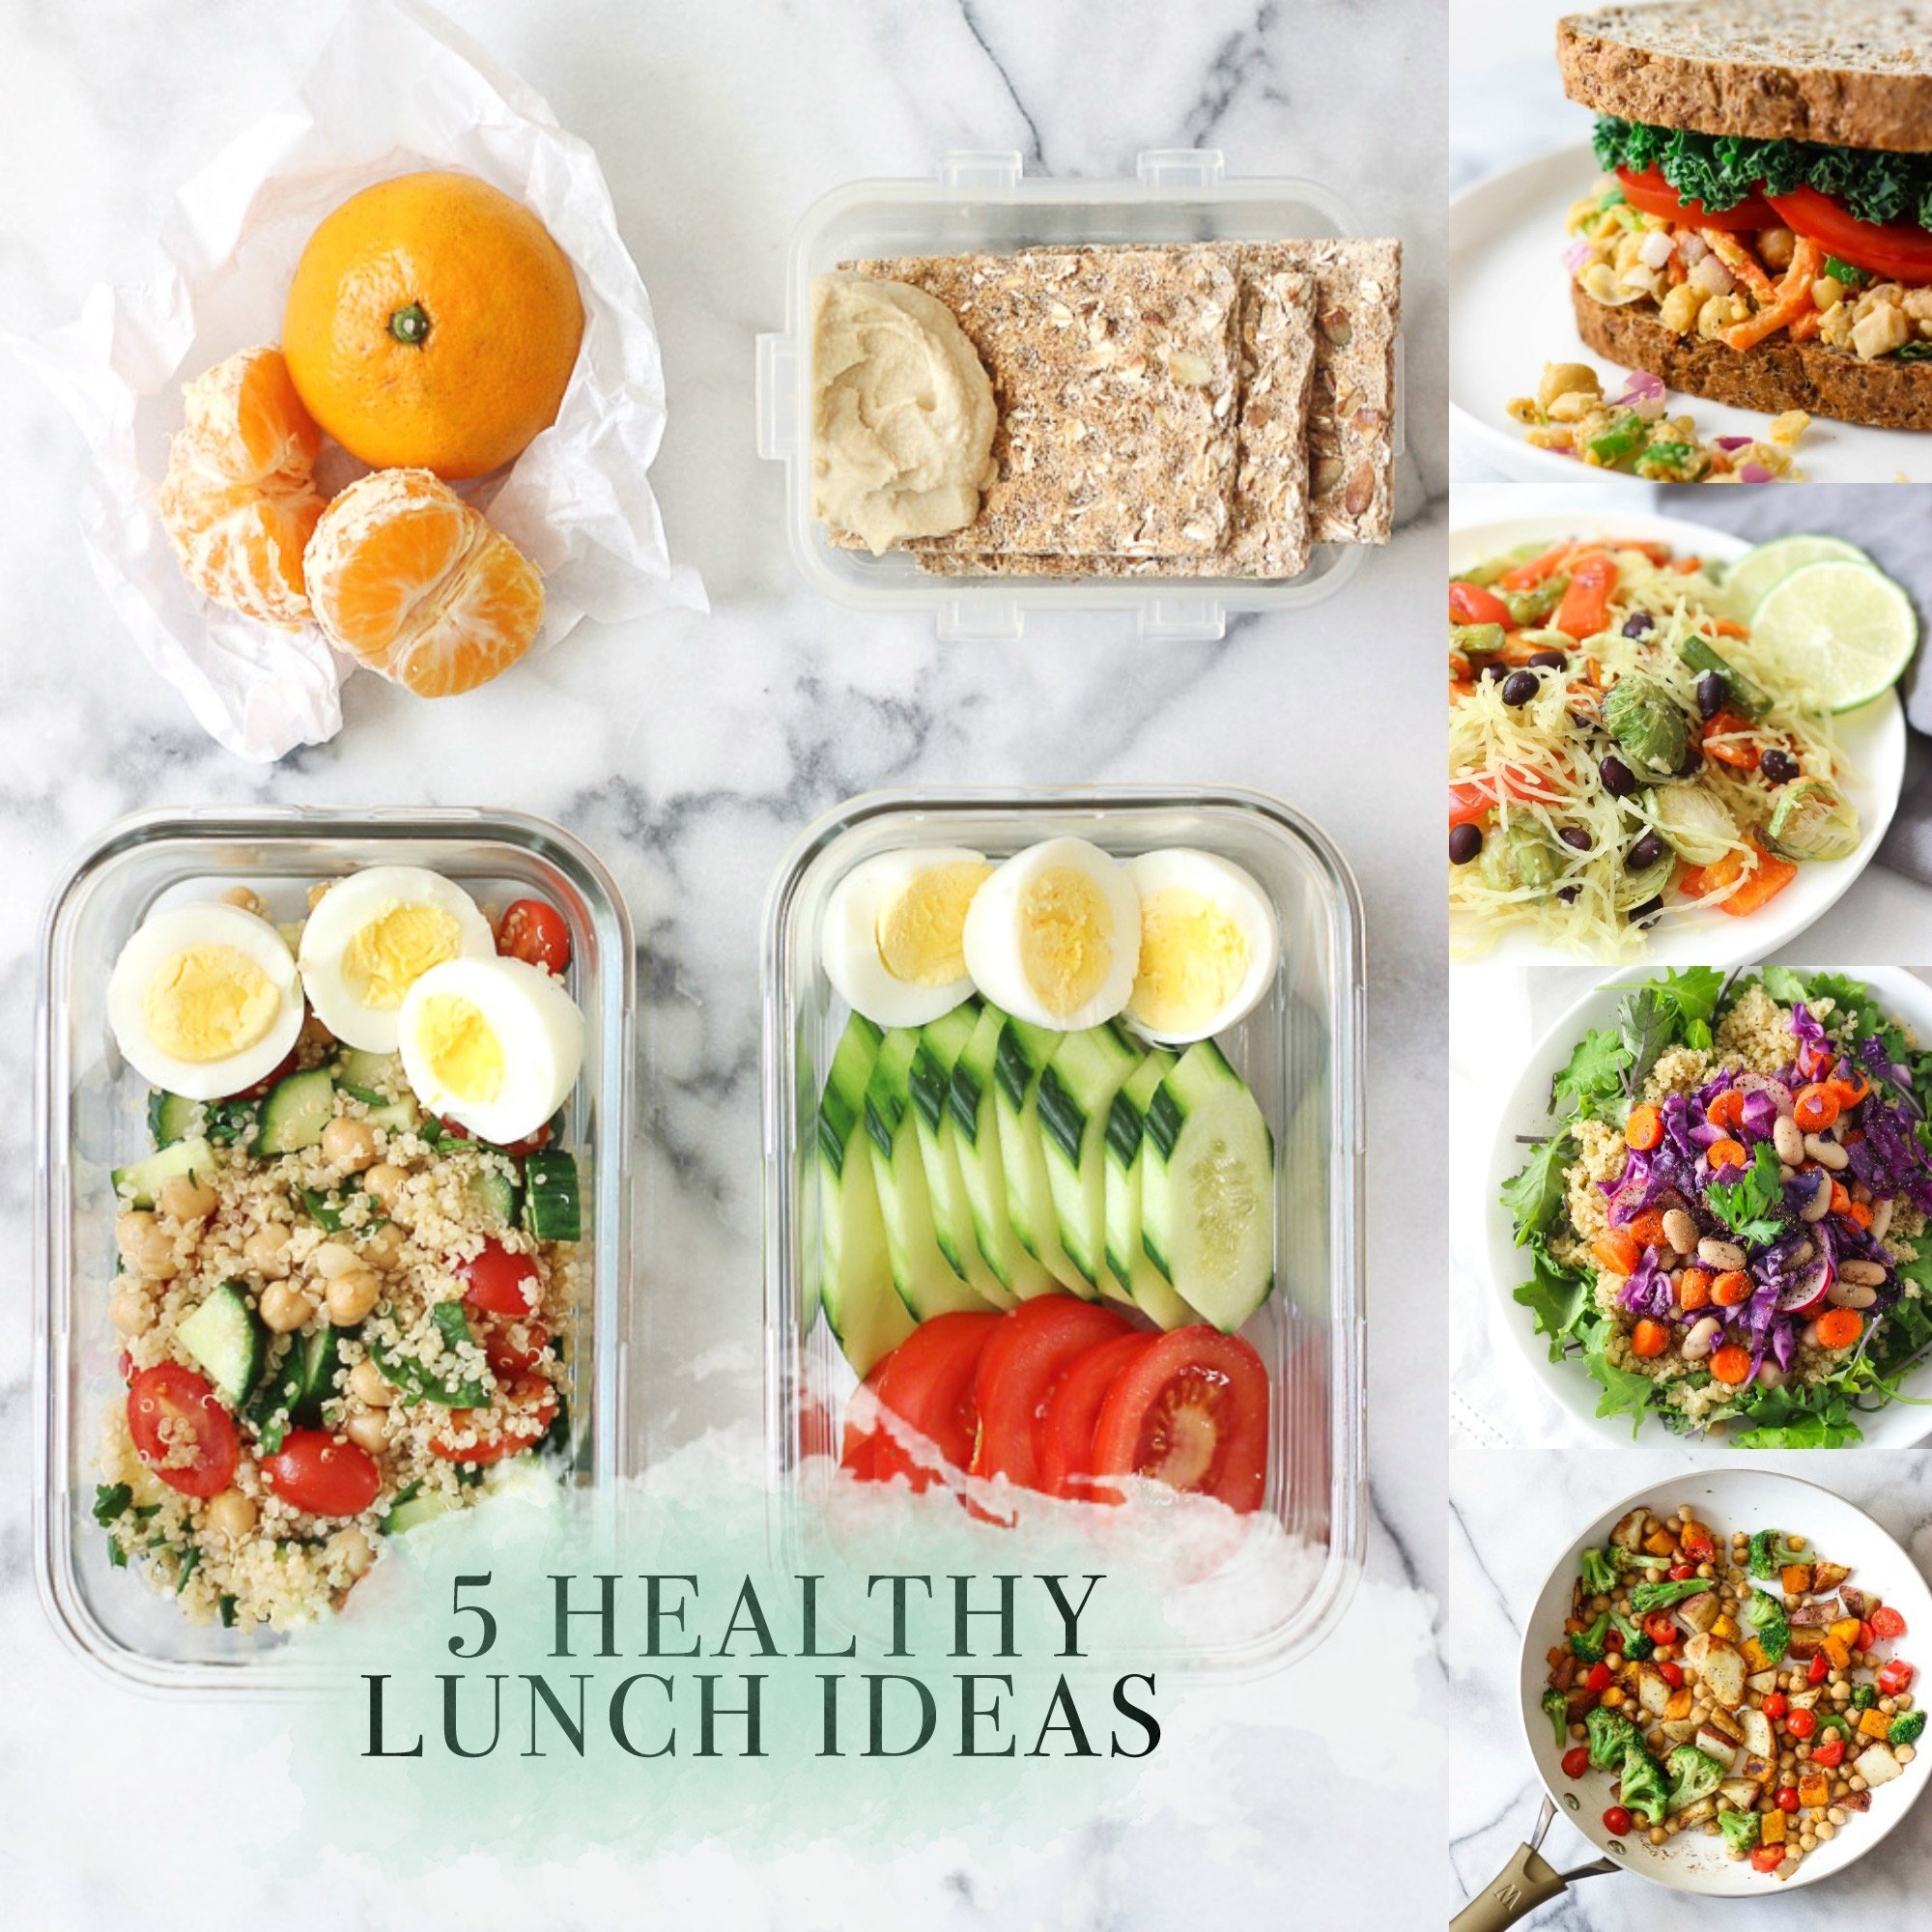 10 Elegant Easy Healthy Lunch Ideas For Work lunch archives page 3 of 8 exploring healthy foods 1 2020